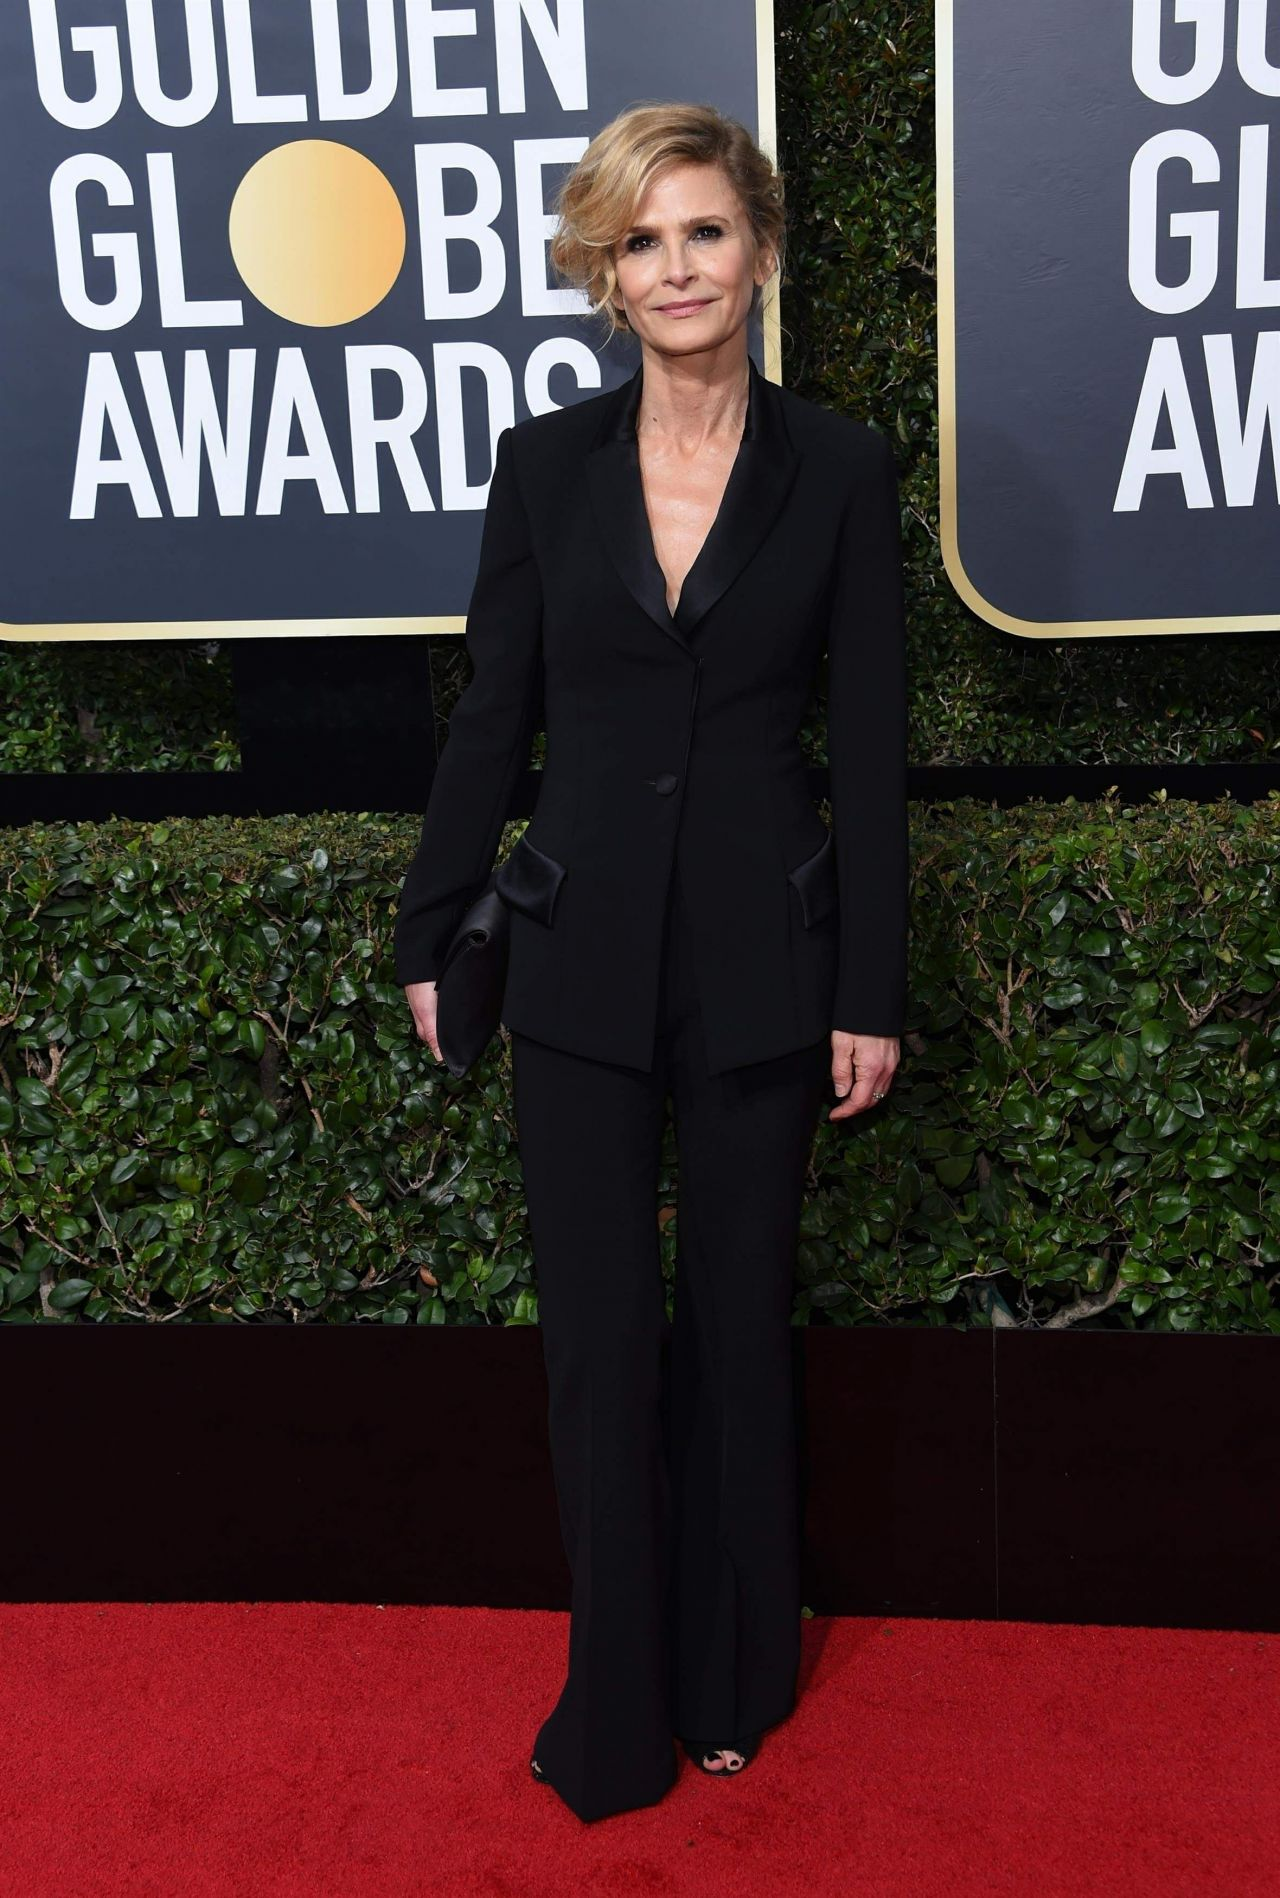 Kyra Sedgwick – Golden Globe Awards 2018